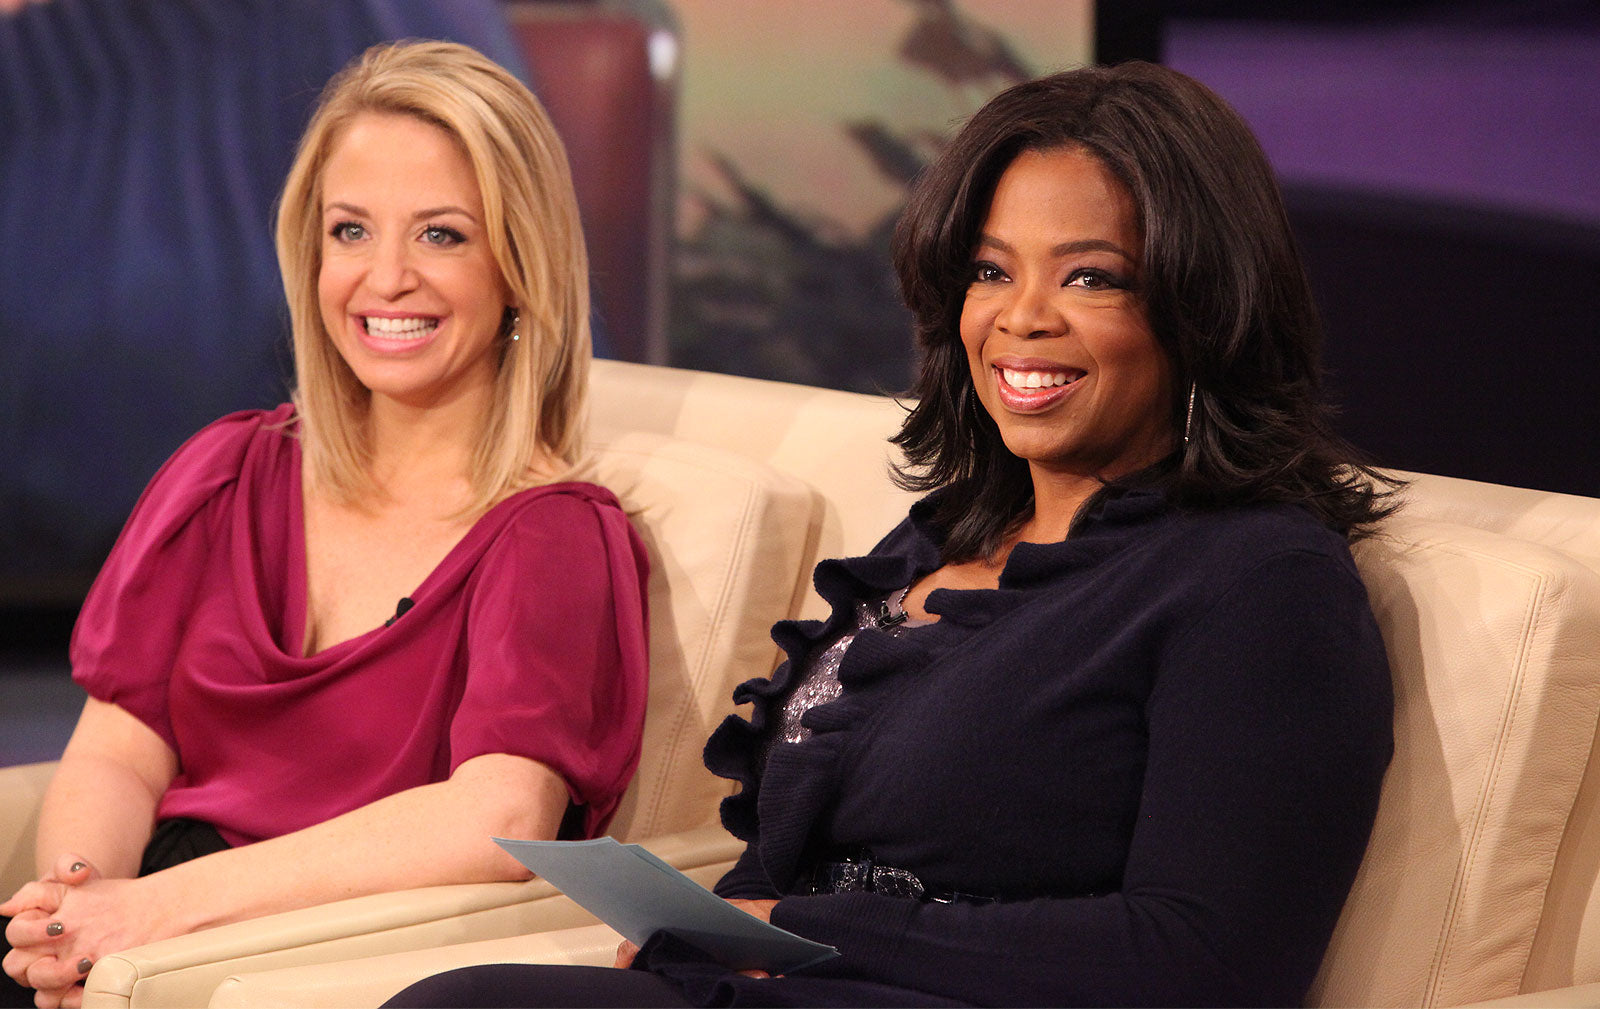 Laura Berman and Oprah